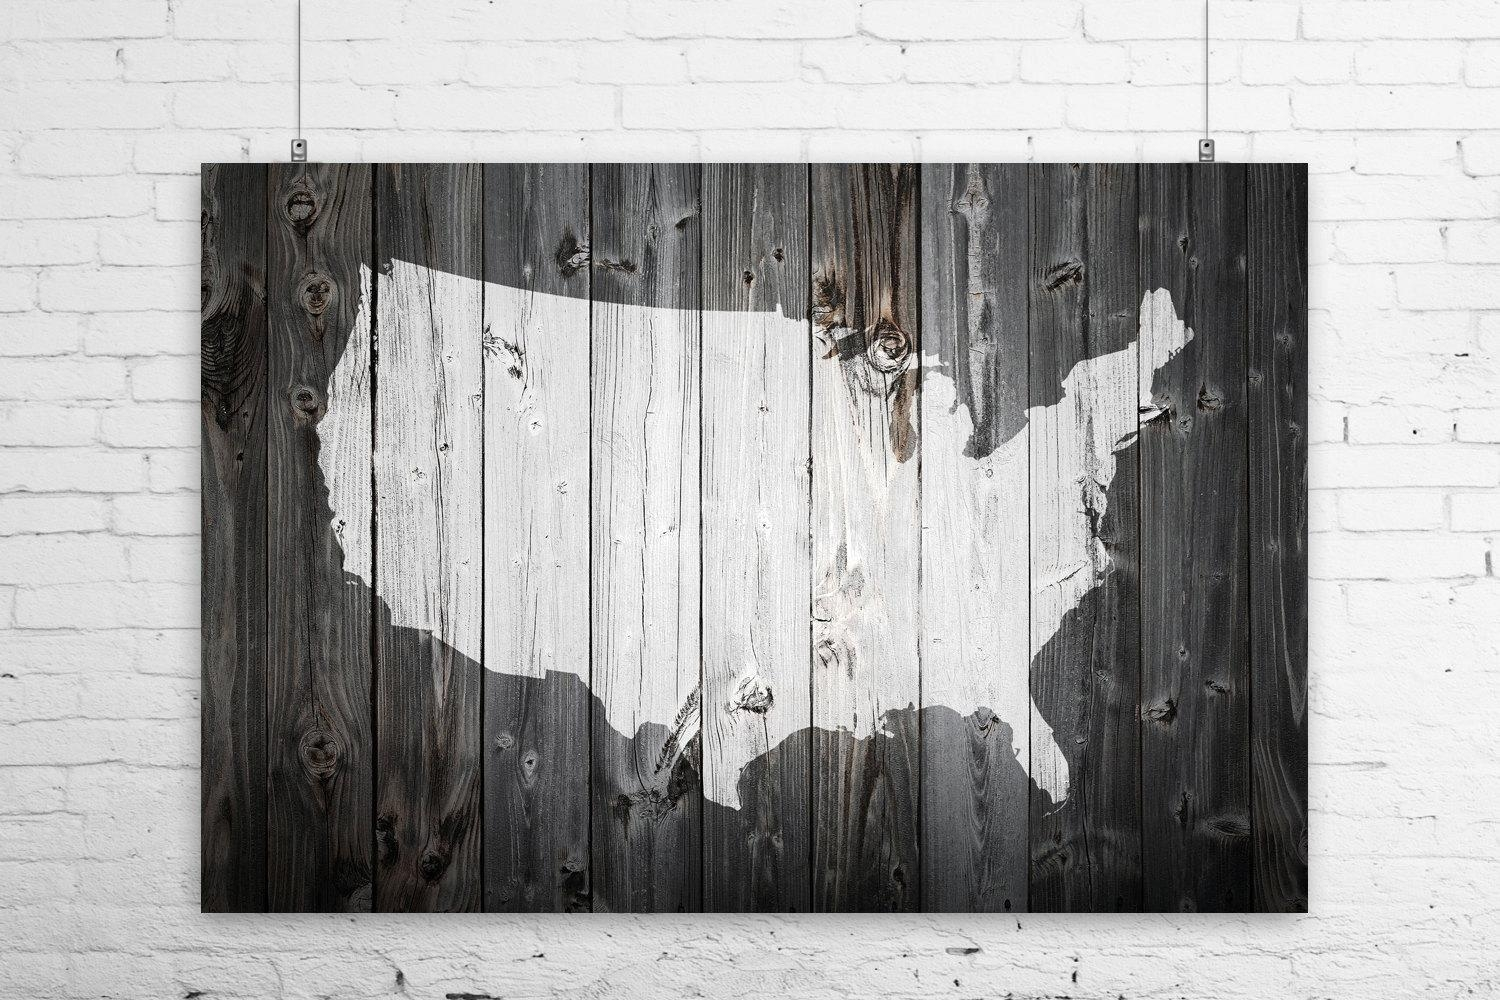 Rustic Painted Barn Wood Us Map Art Print Wall Poster Usa Intended For United States Map Wall Art (View 21 of 21)